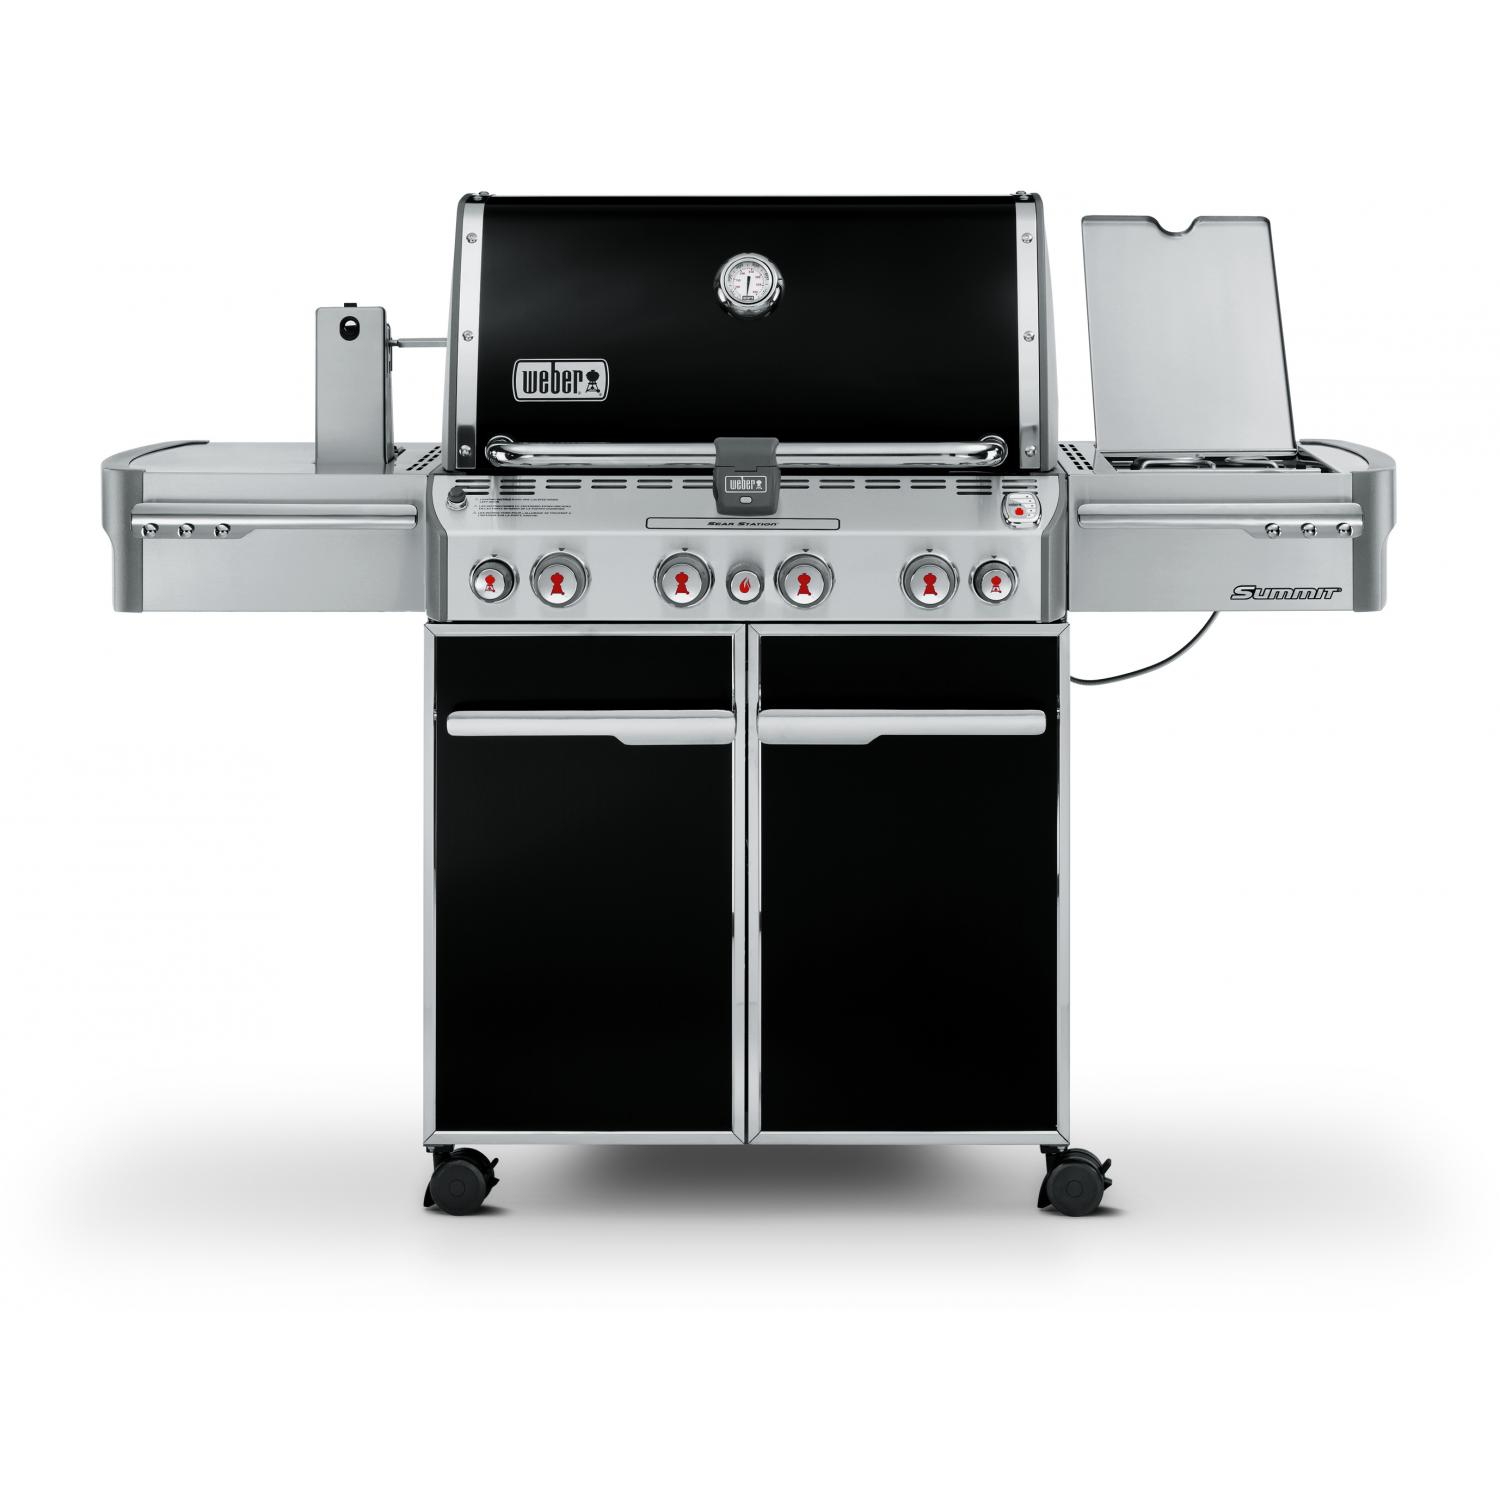 Weber Summit E-470 Propane Gas Grill On Cart With Rotisserie, Sear Burner & Side Burner - Black 2678708